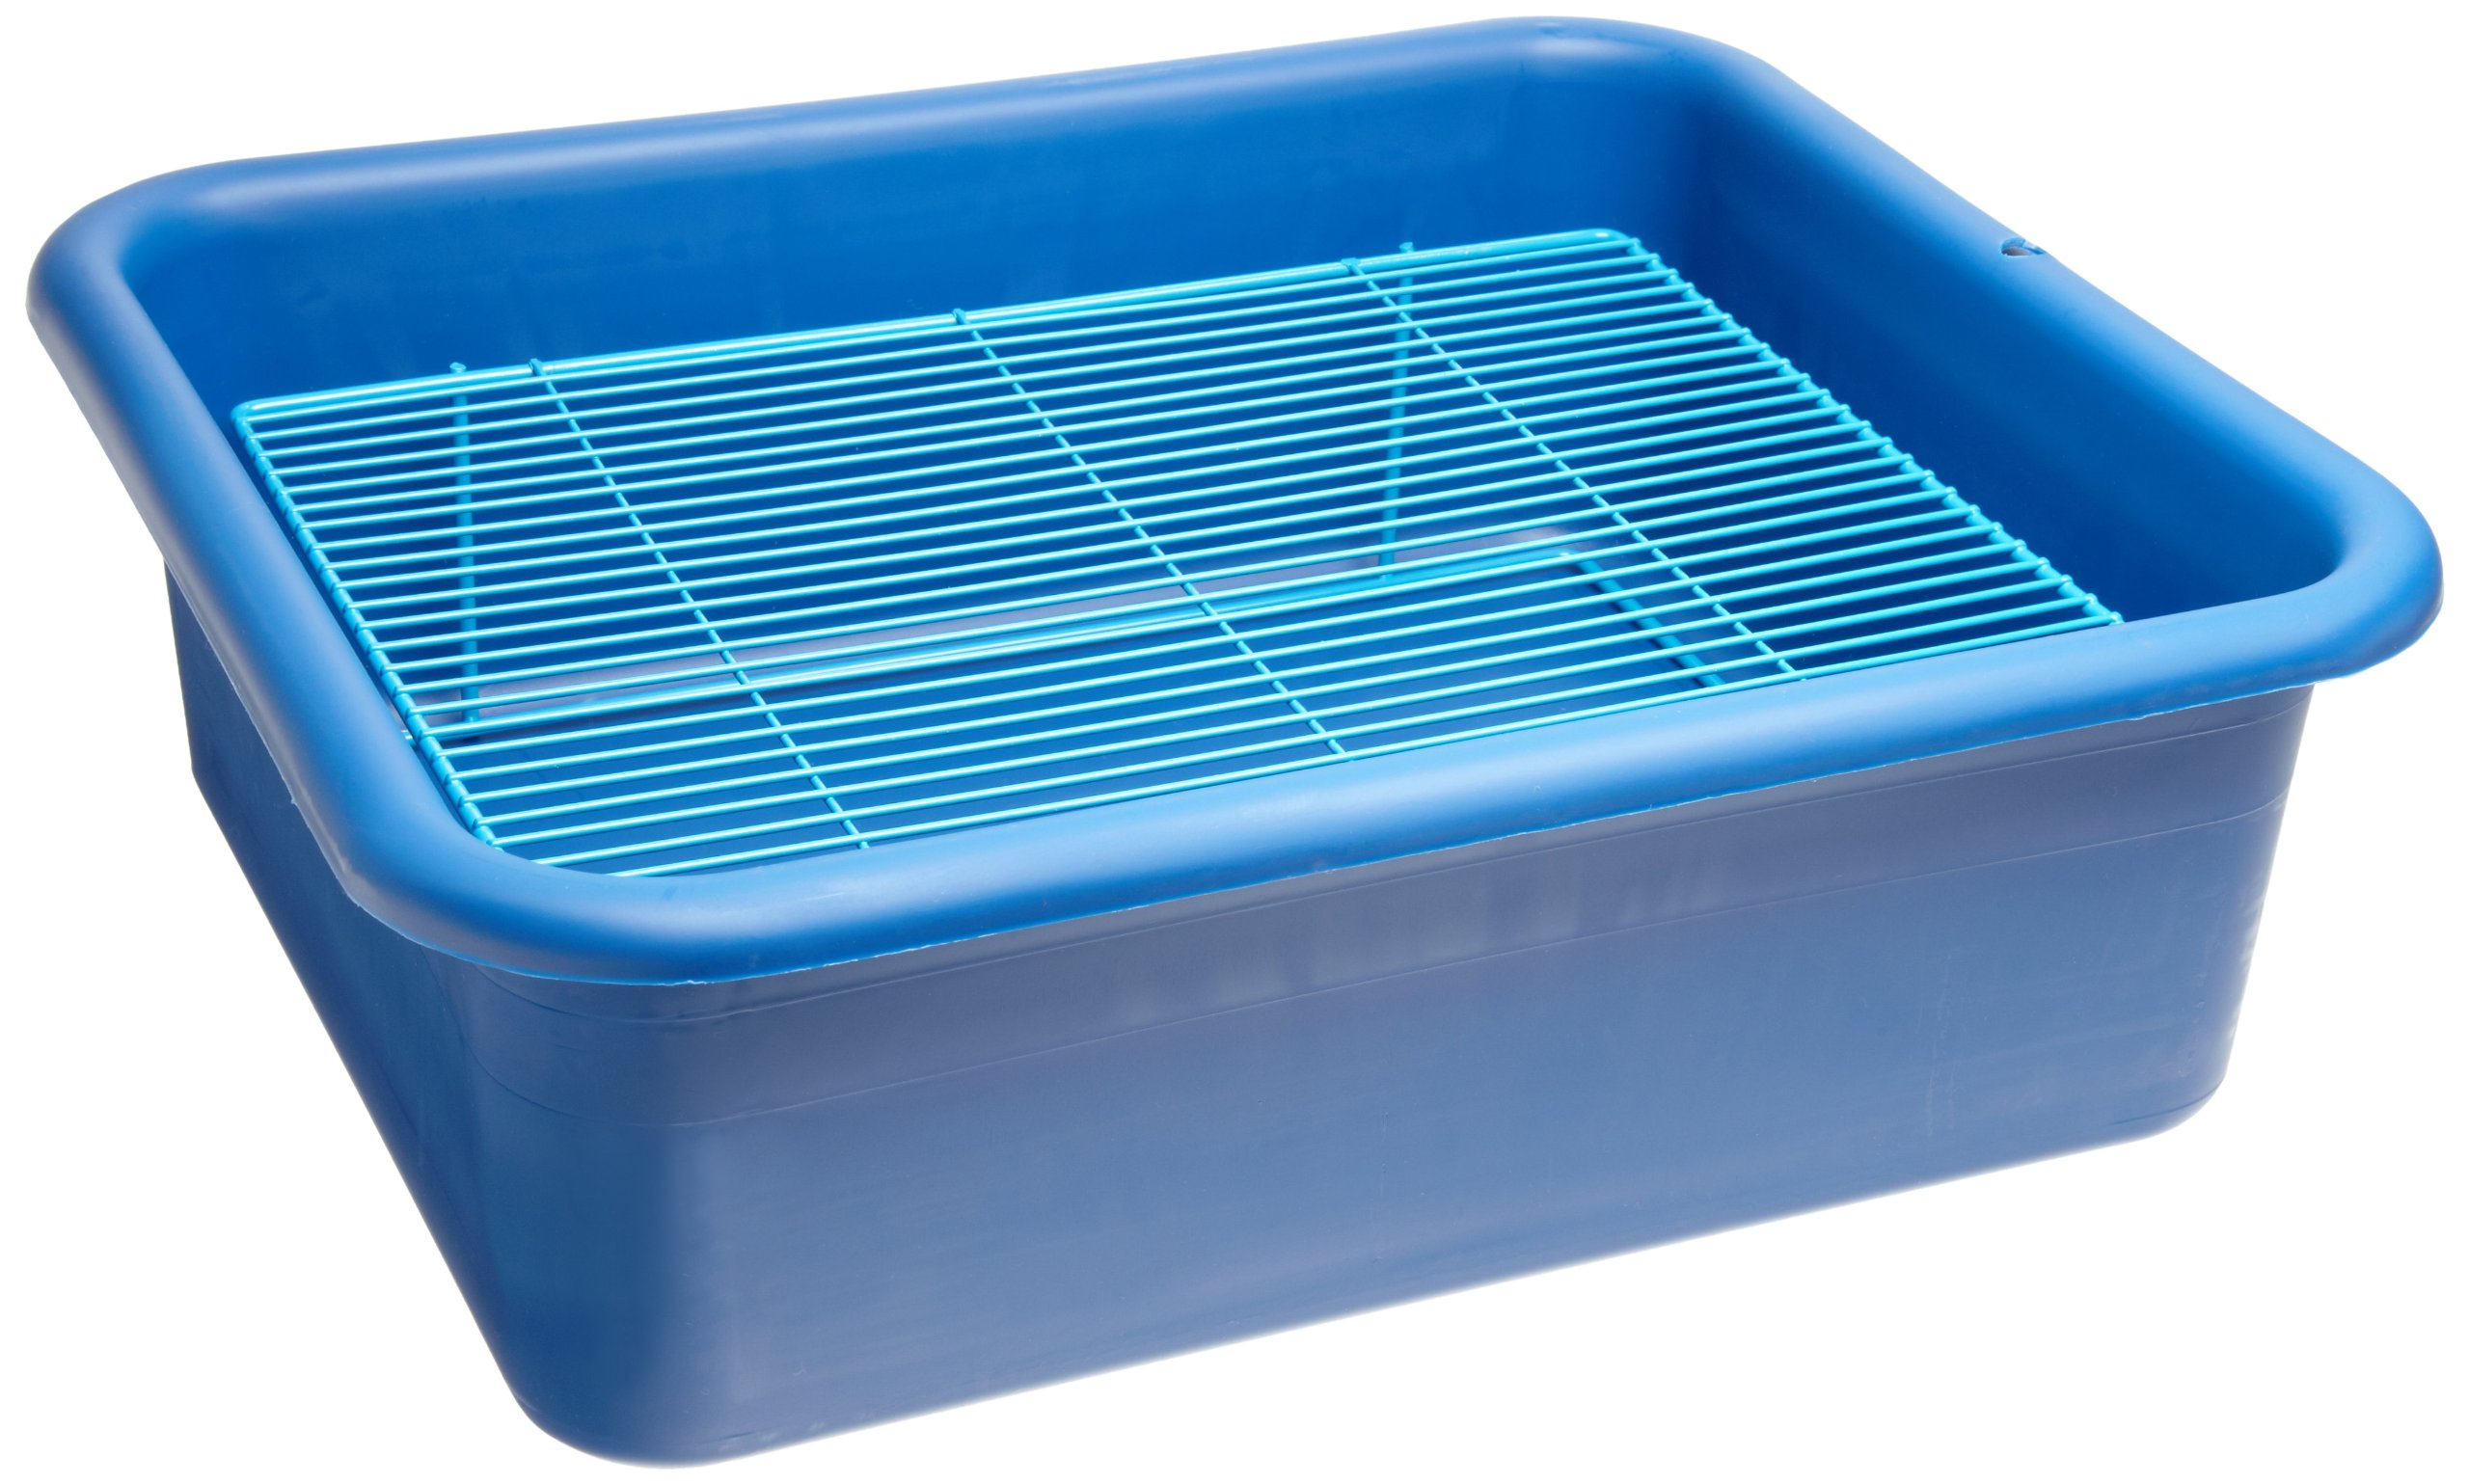 Bel-Art Polypropylene Spill Containment Tray with Grid; 14³/₈ x 12⅛ x 4¾ in. (F24676-0003)